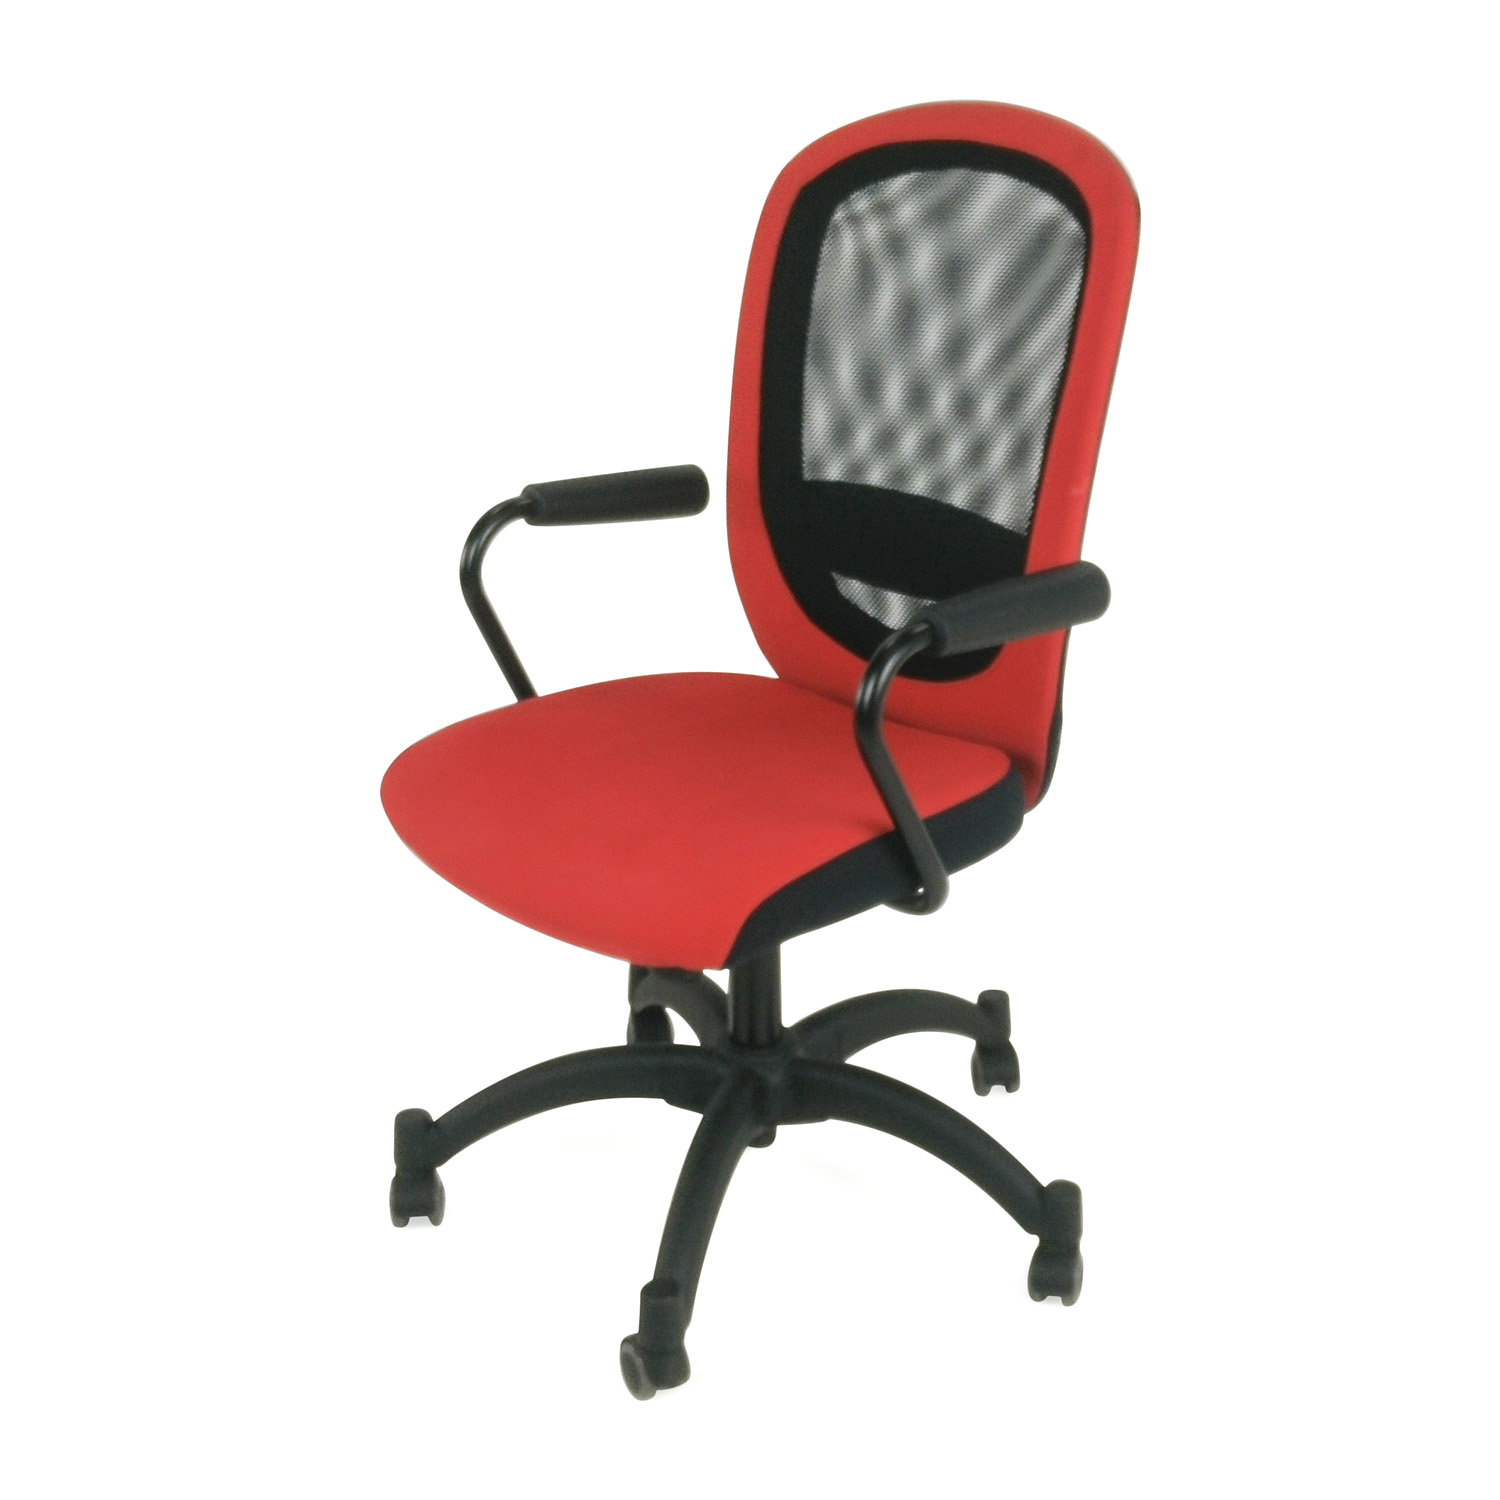 ikea recliner chairs sale rocking for nursing 90 off red office chair